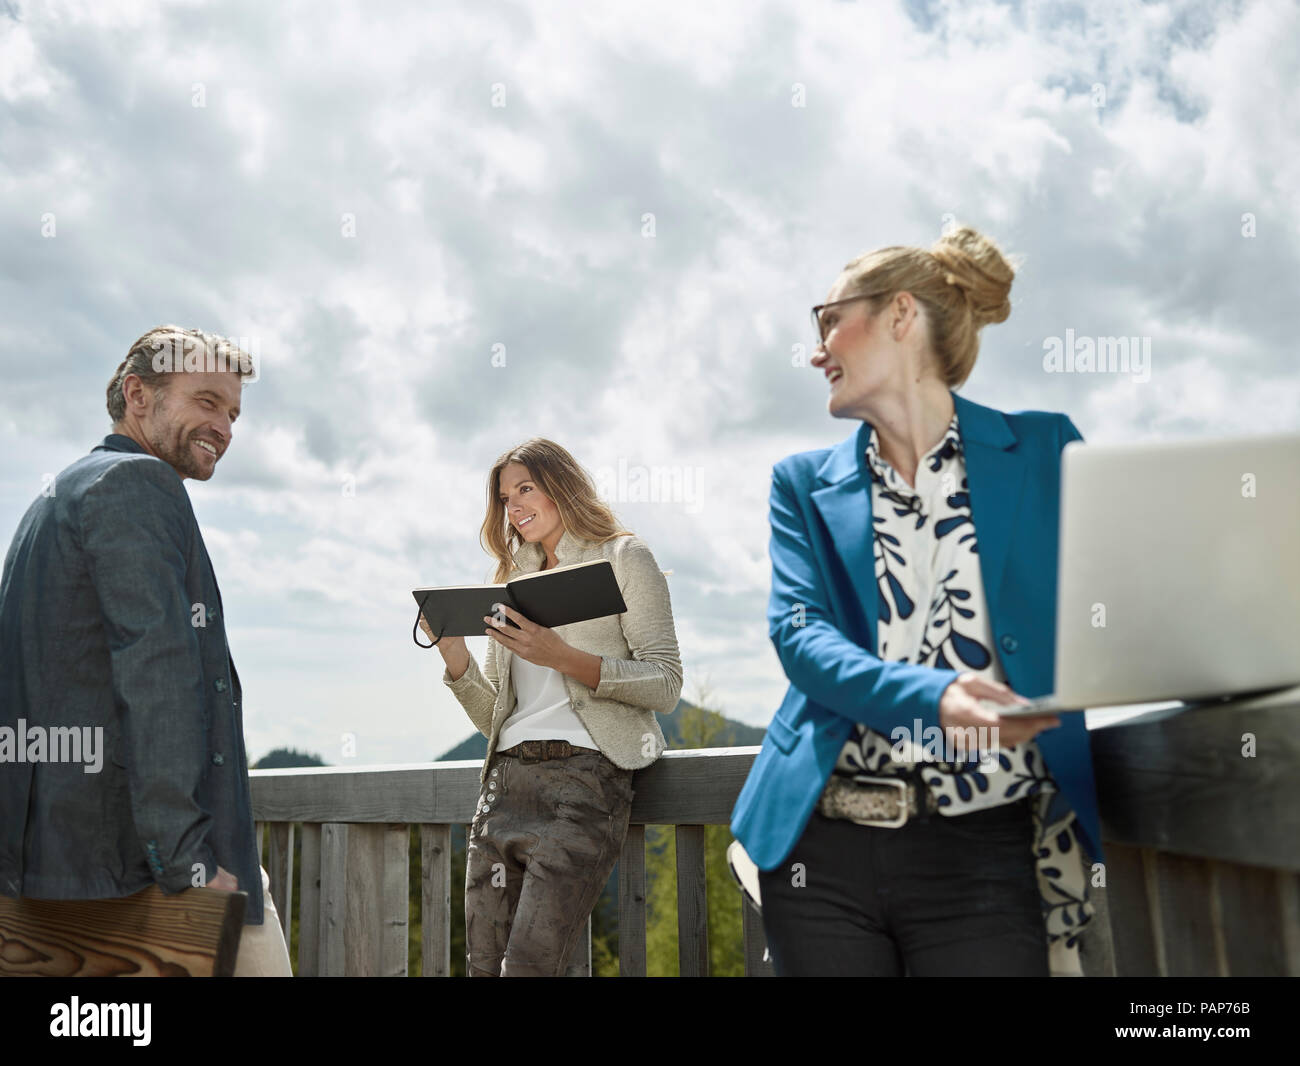 Smiling colleagues with laptop standing outside talking - Stock Image